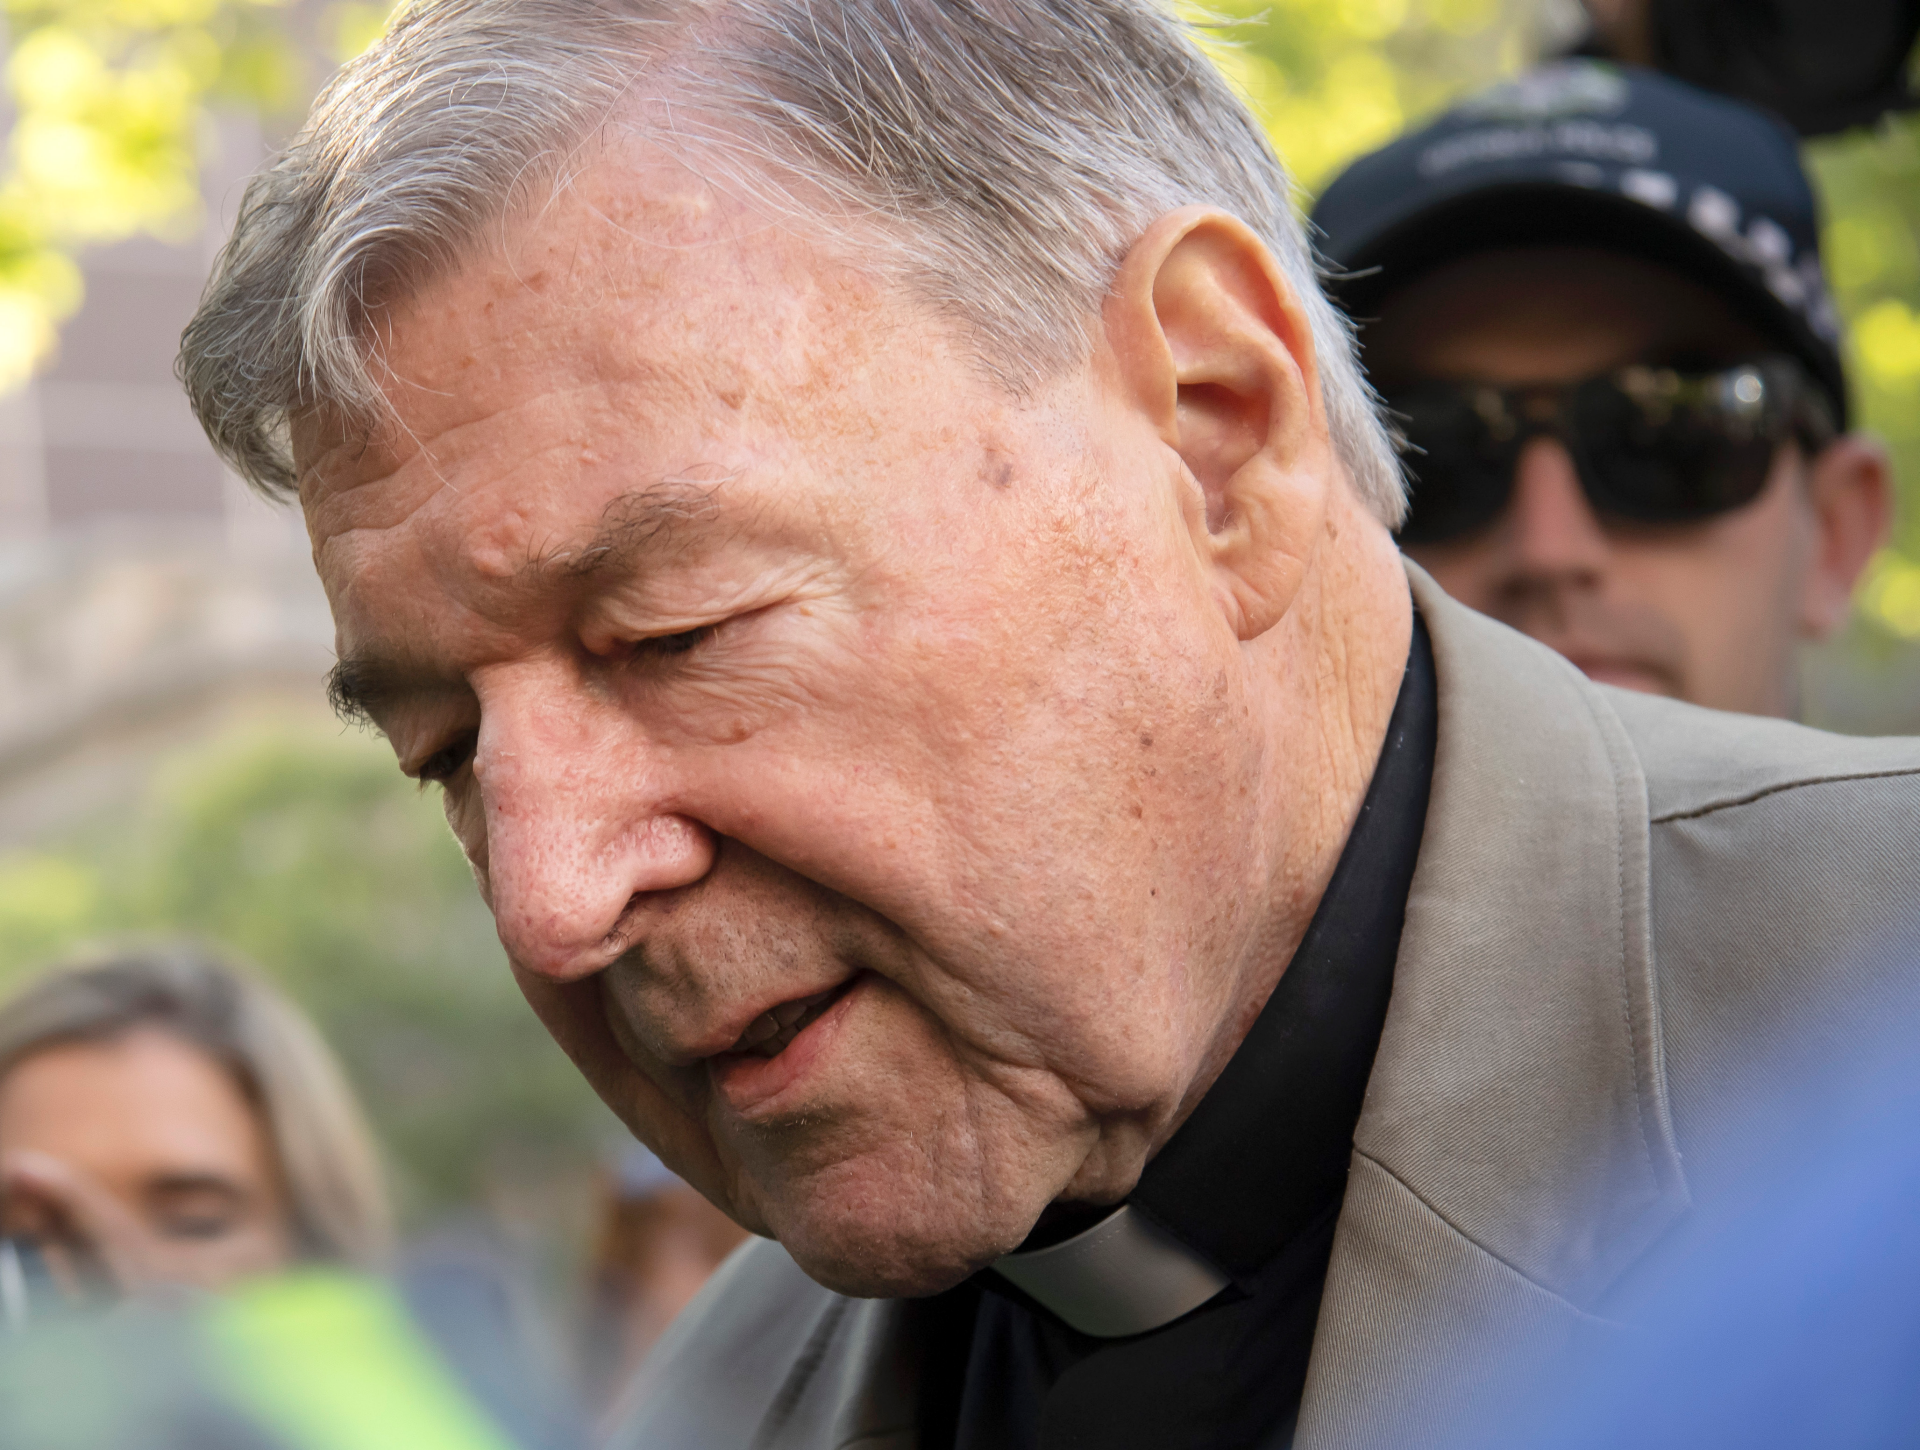 Westlake Legal Group 92bffc0a-ContentBroker_contentid-779b4fa949e147f1a6e358a4ad51bd1a Prosecutors: Australian cardinal's convictions should stand Melbourne (Australia) fox-news/world/world-regions/pacific fox-news/world/world-regions/australia fox-news/world/religion fox-news/world fnc/world fnc Associated Press article 20656df1-31e4-5f5d-ab49-7a6b7e250d6a